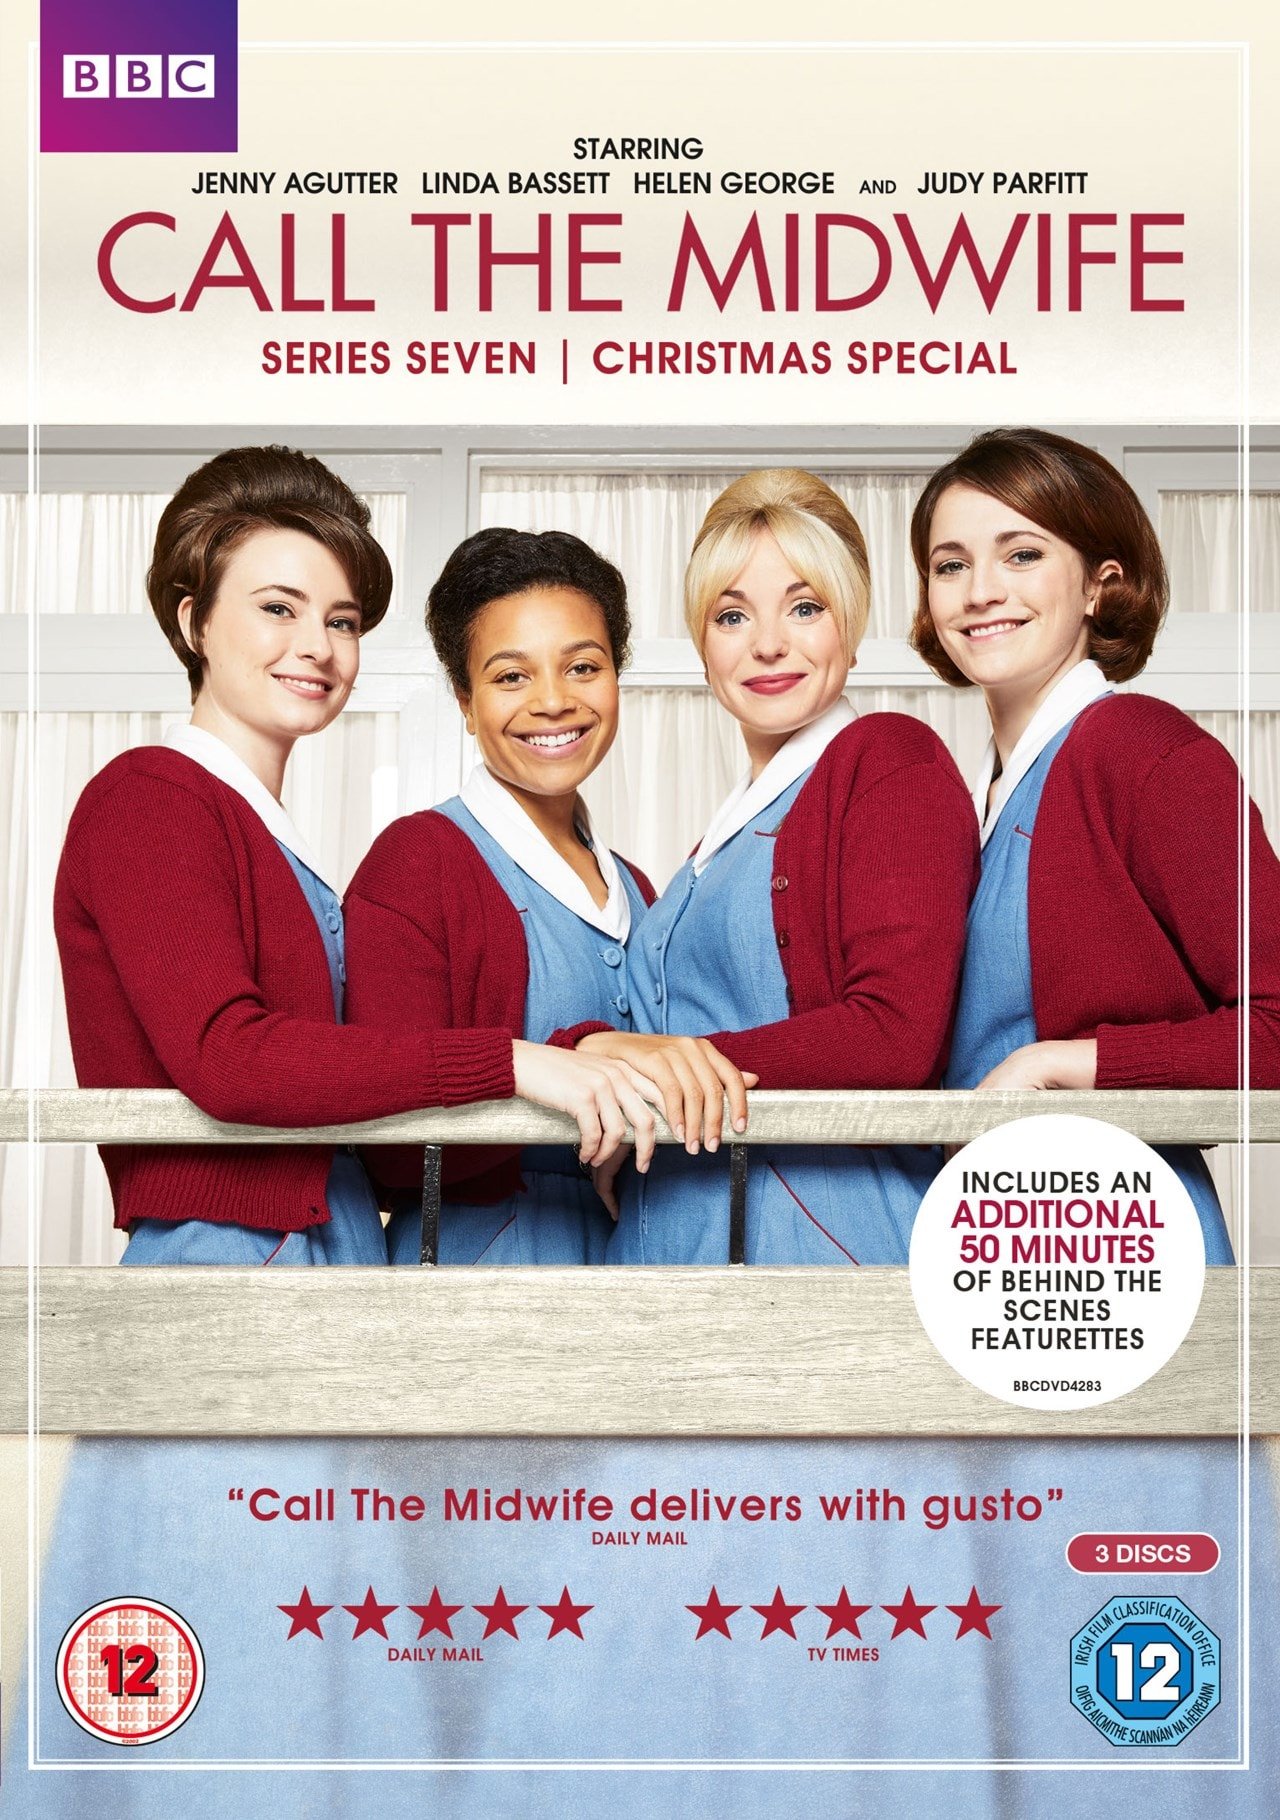 Call The Midwife Series Seven Dvd Box Set Free Shipping Over 20 Hmv Store